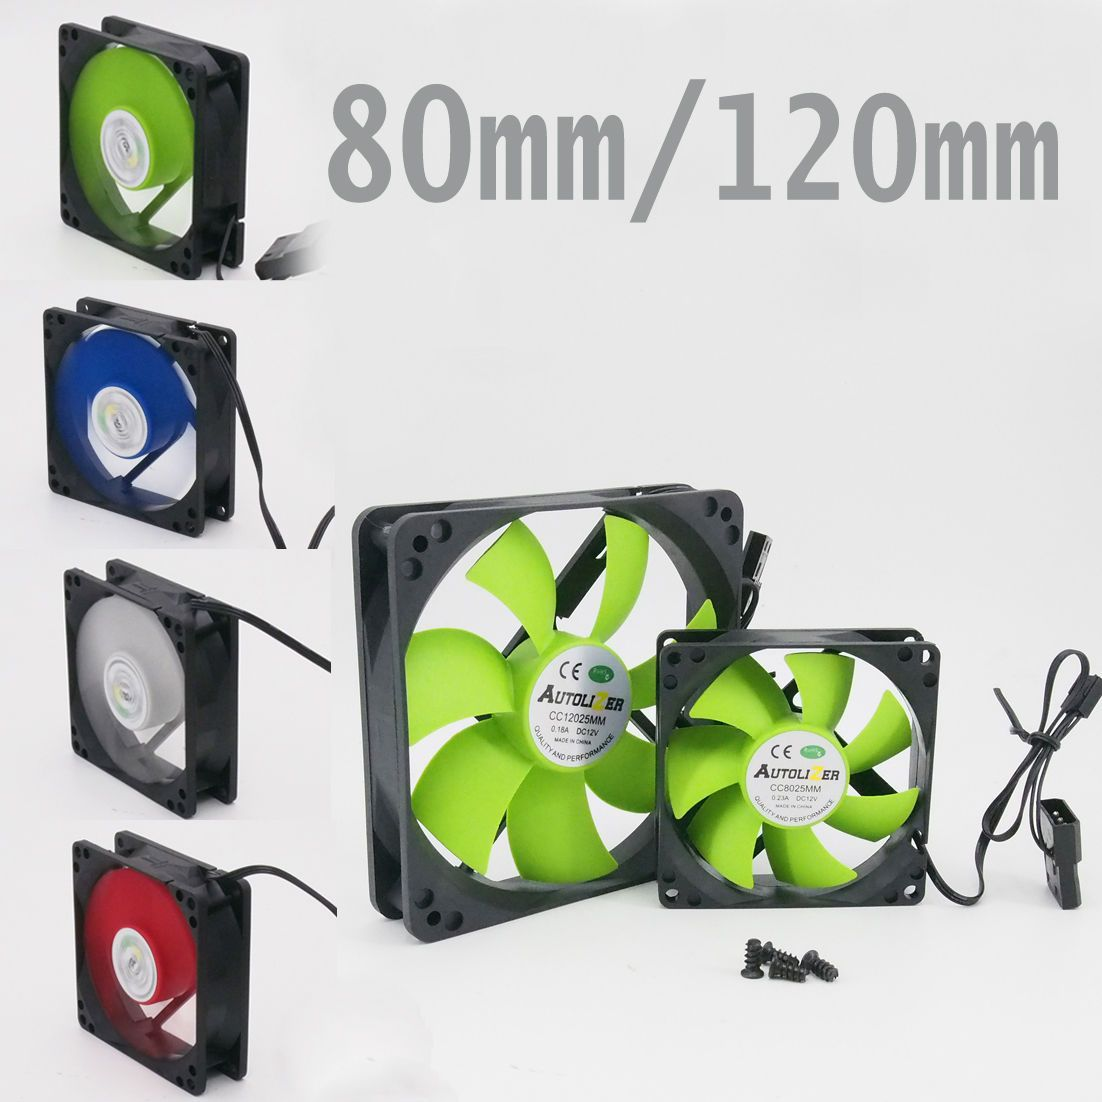 80mm 120mm Quiet Pc Computer Case Cooling Fan Mod All Color Ebay